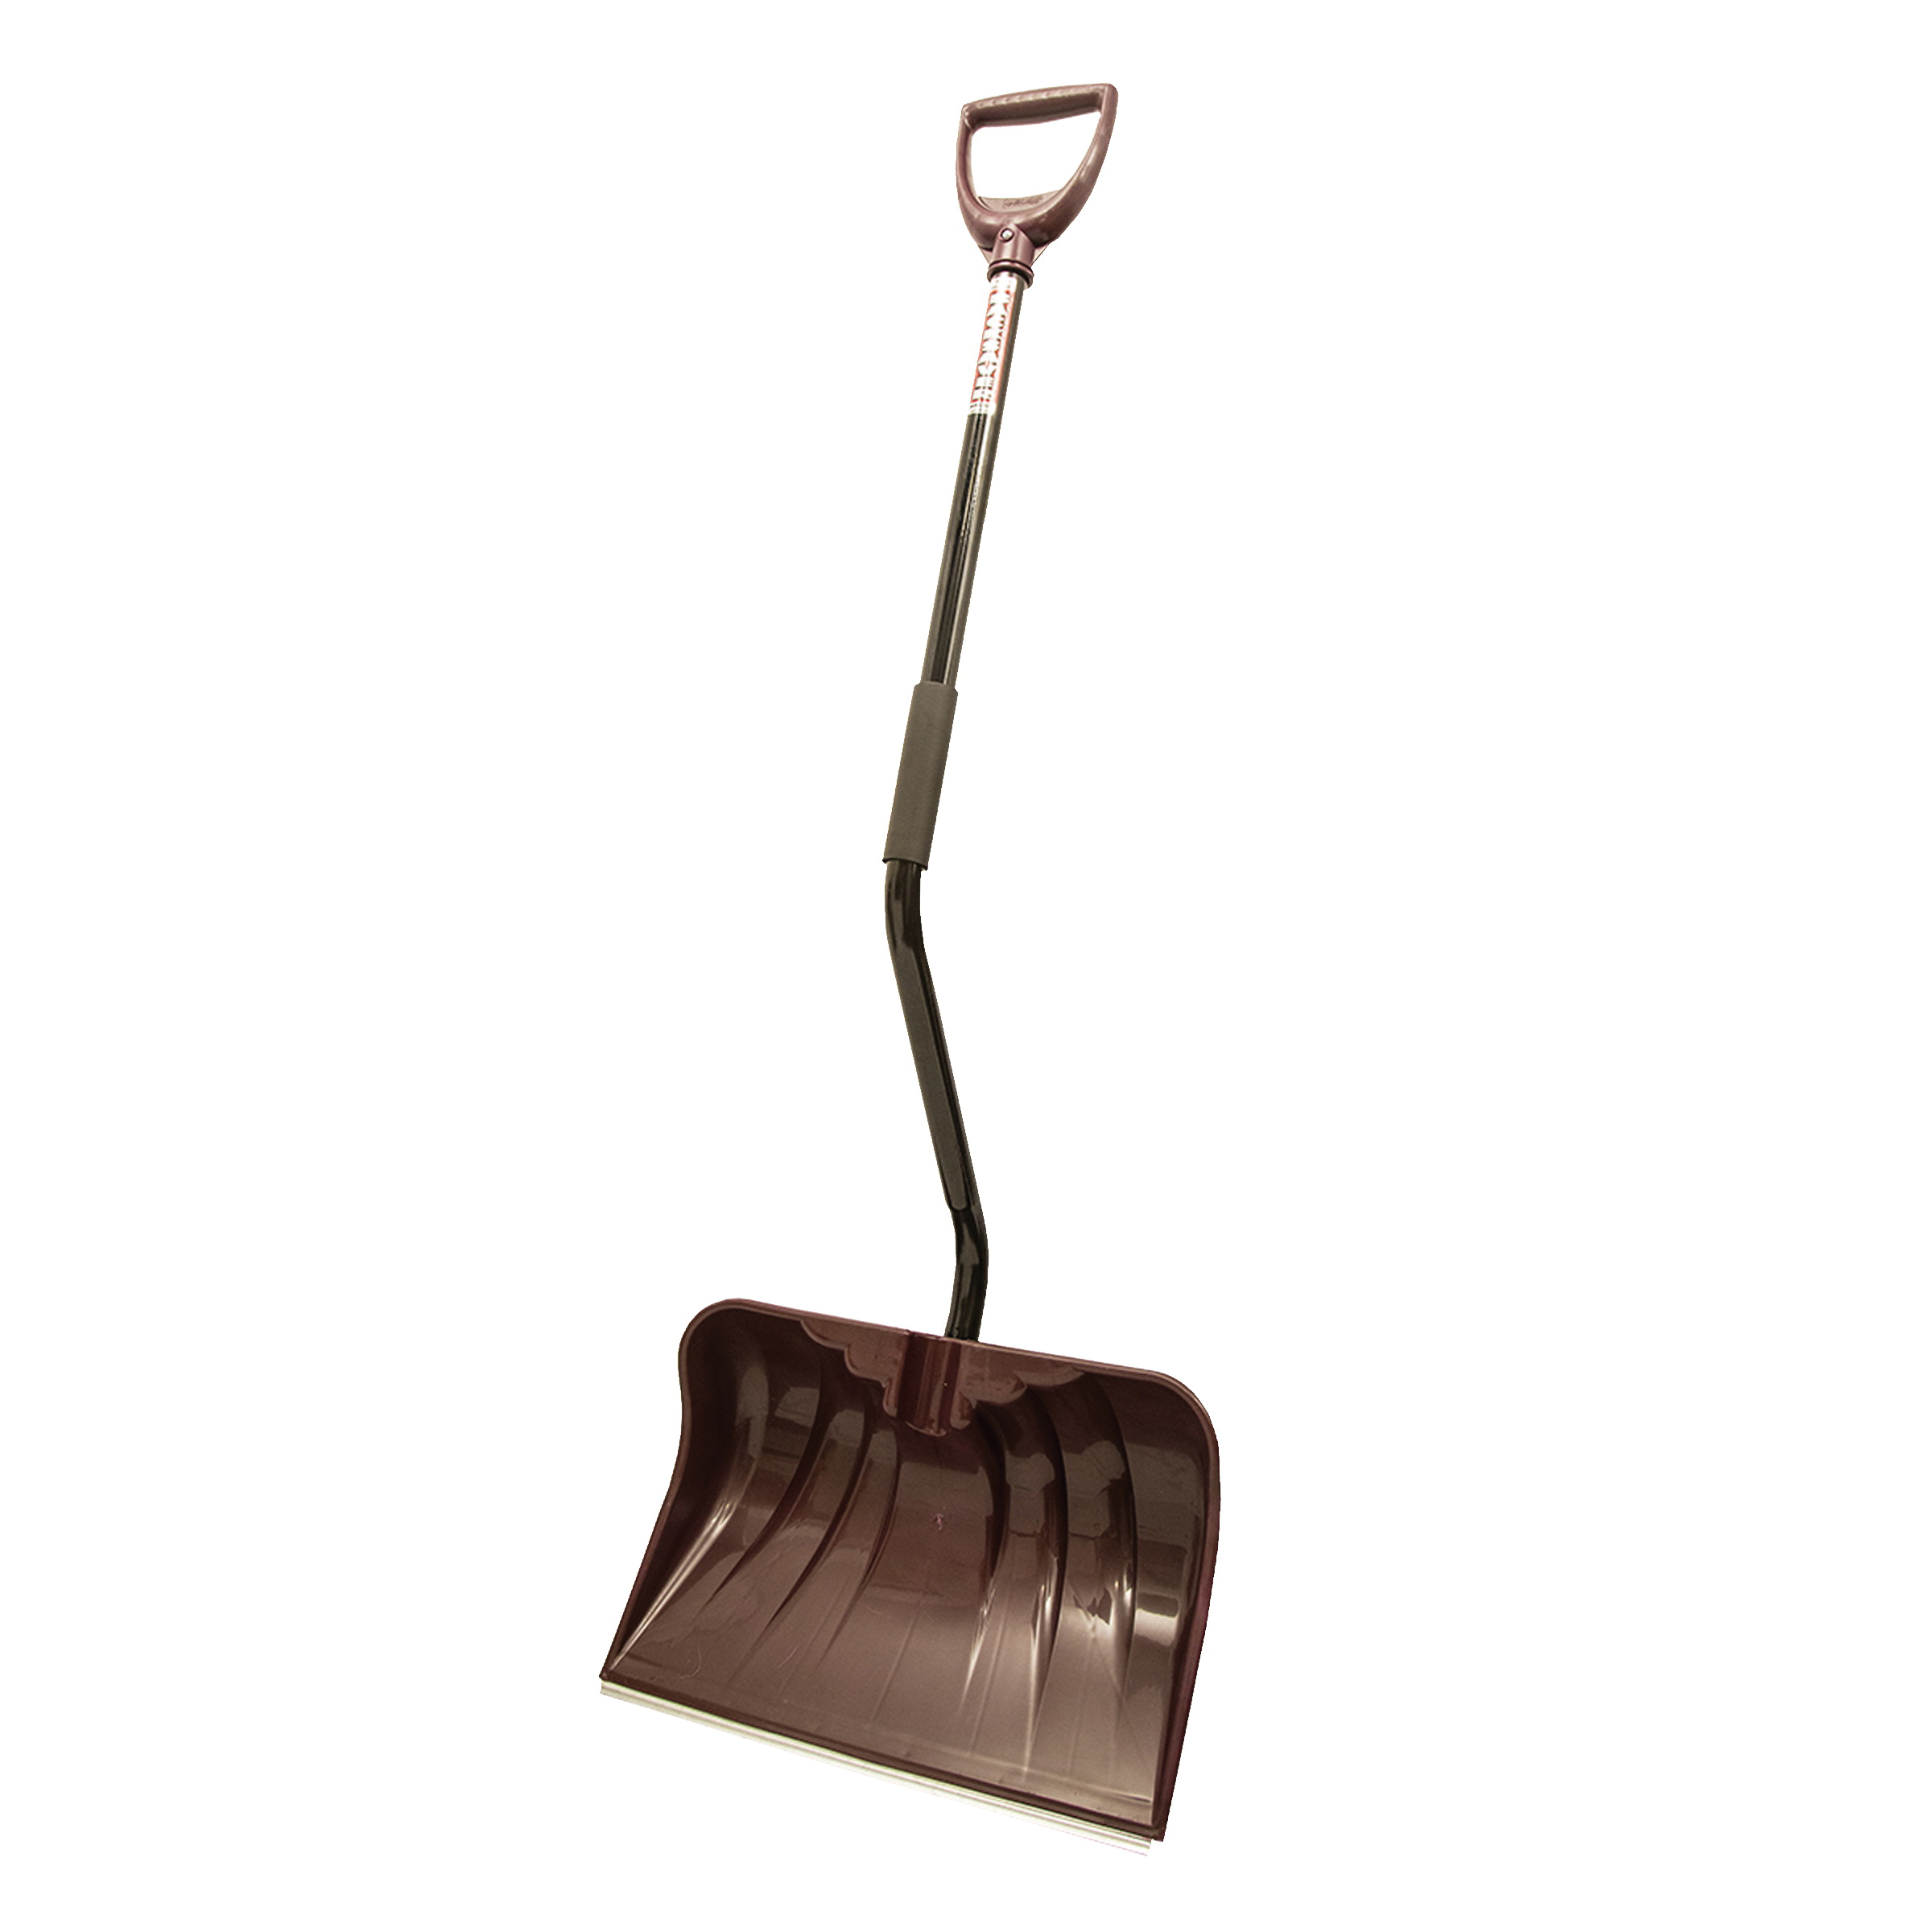 Picture of RUGG 36PBSW-S Snow Shovel, 20 in W Blade, Combo Blade, Polyethylene Blade, Steel Handle, Merlot